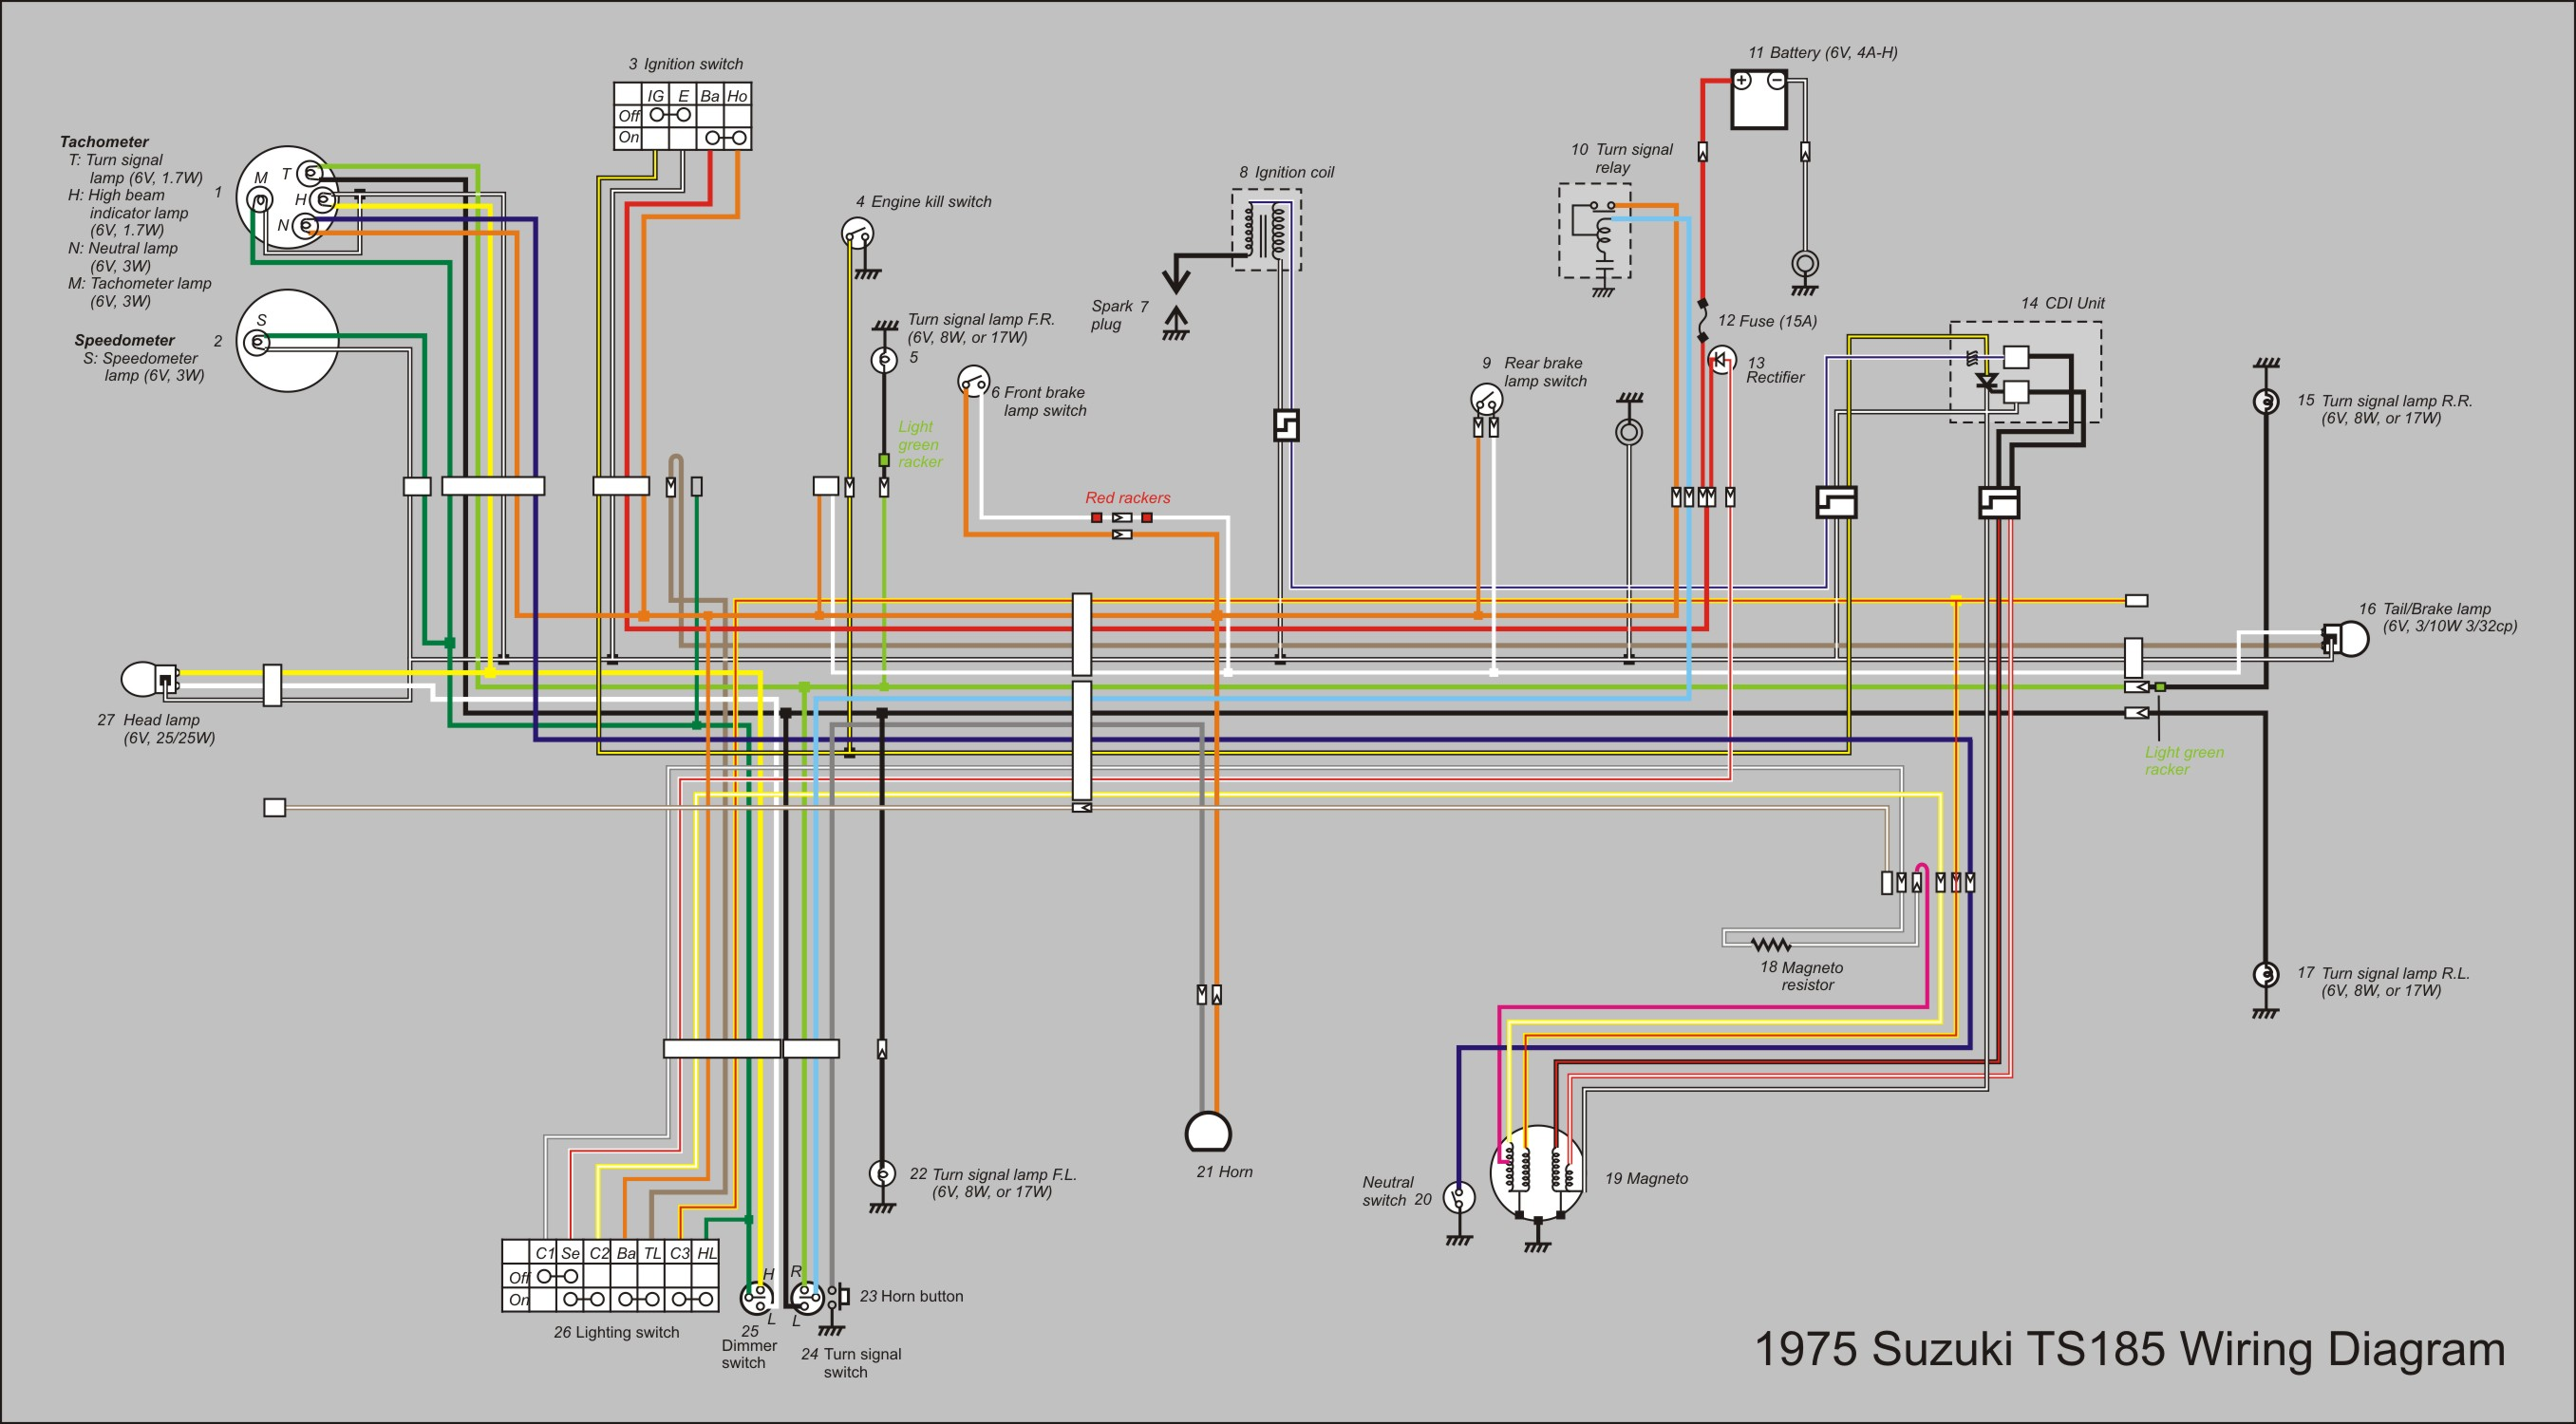 TS185_Wiring_Diagram_new file ts185 wiring diagram new jpg wikimedia commons wiring diagram at nearapp.co